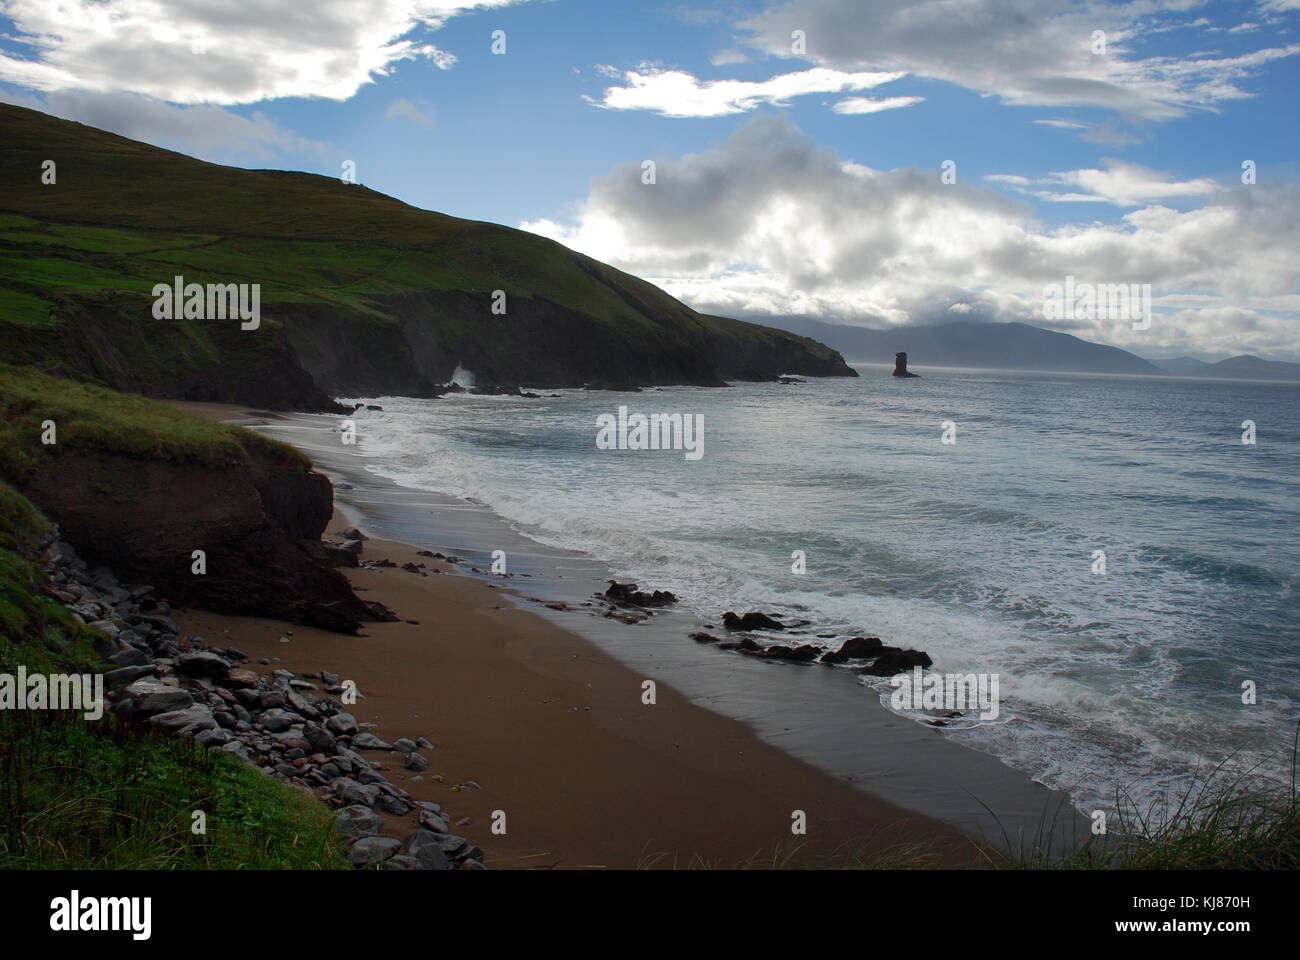 Rocky coastline near Dingle, Ireland - Stock Image